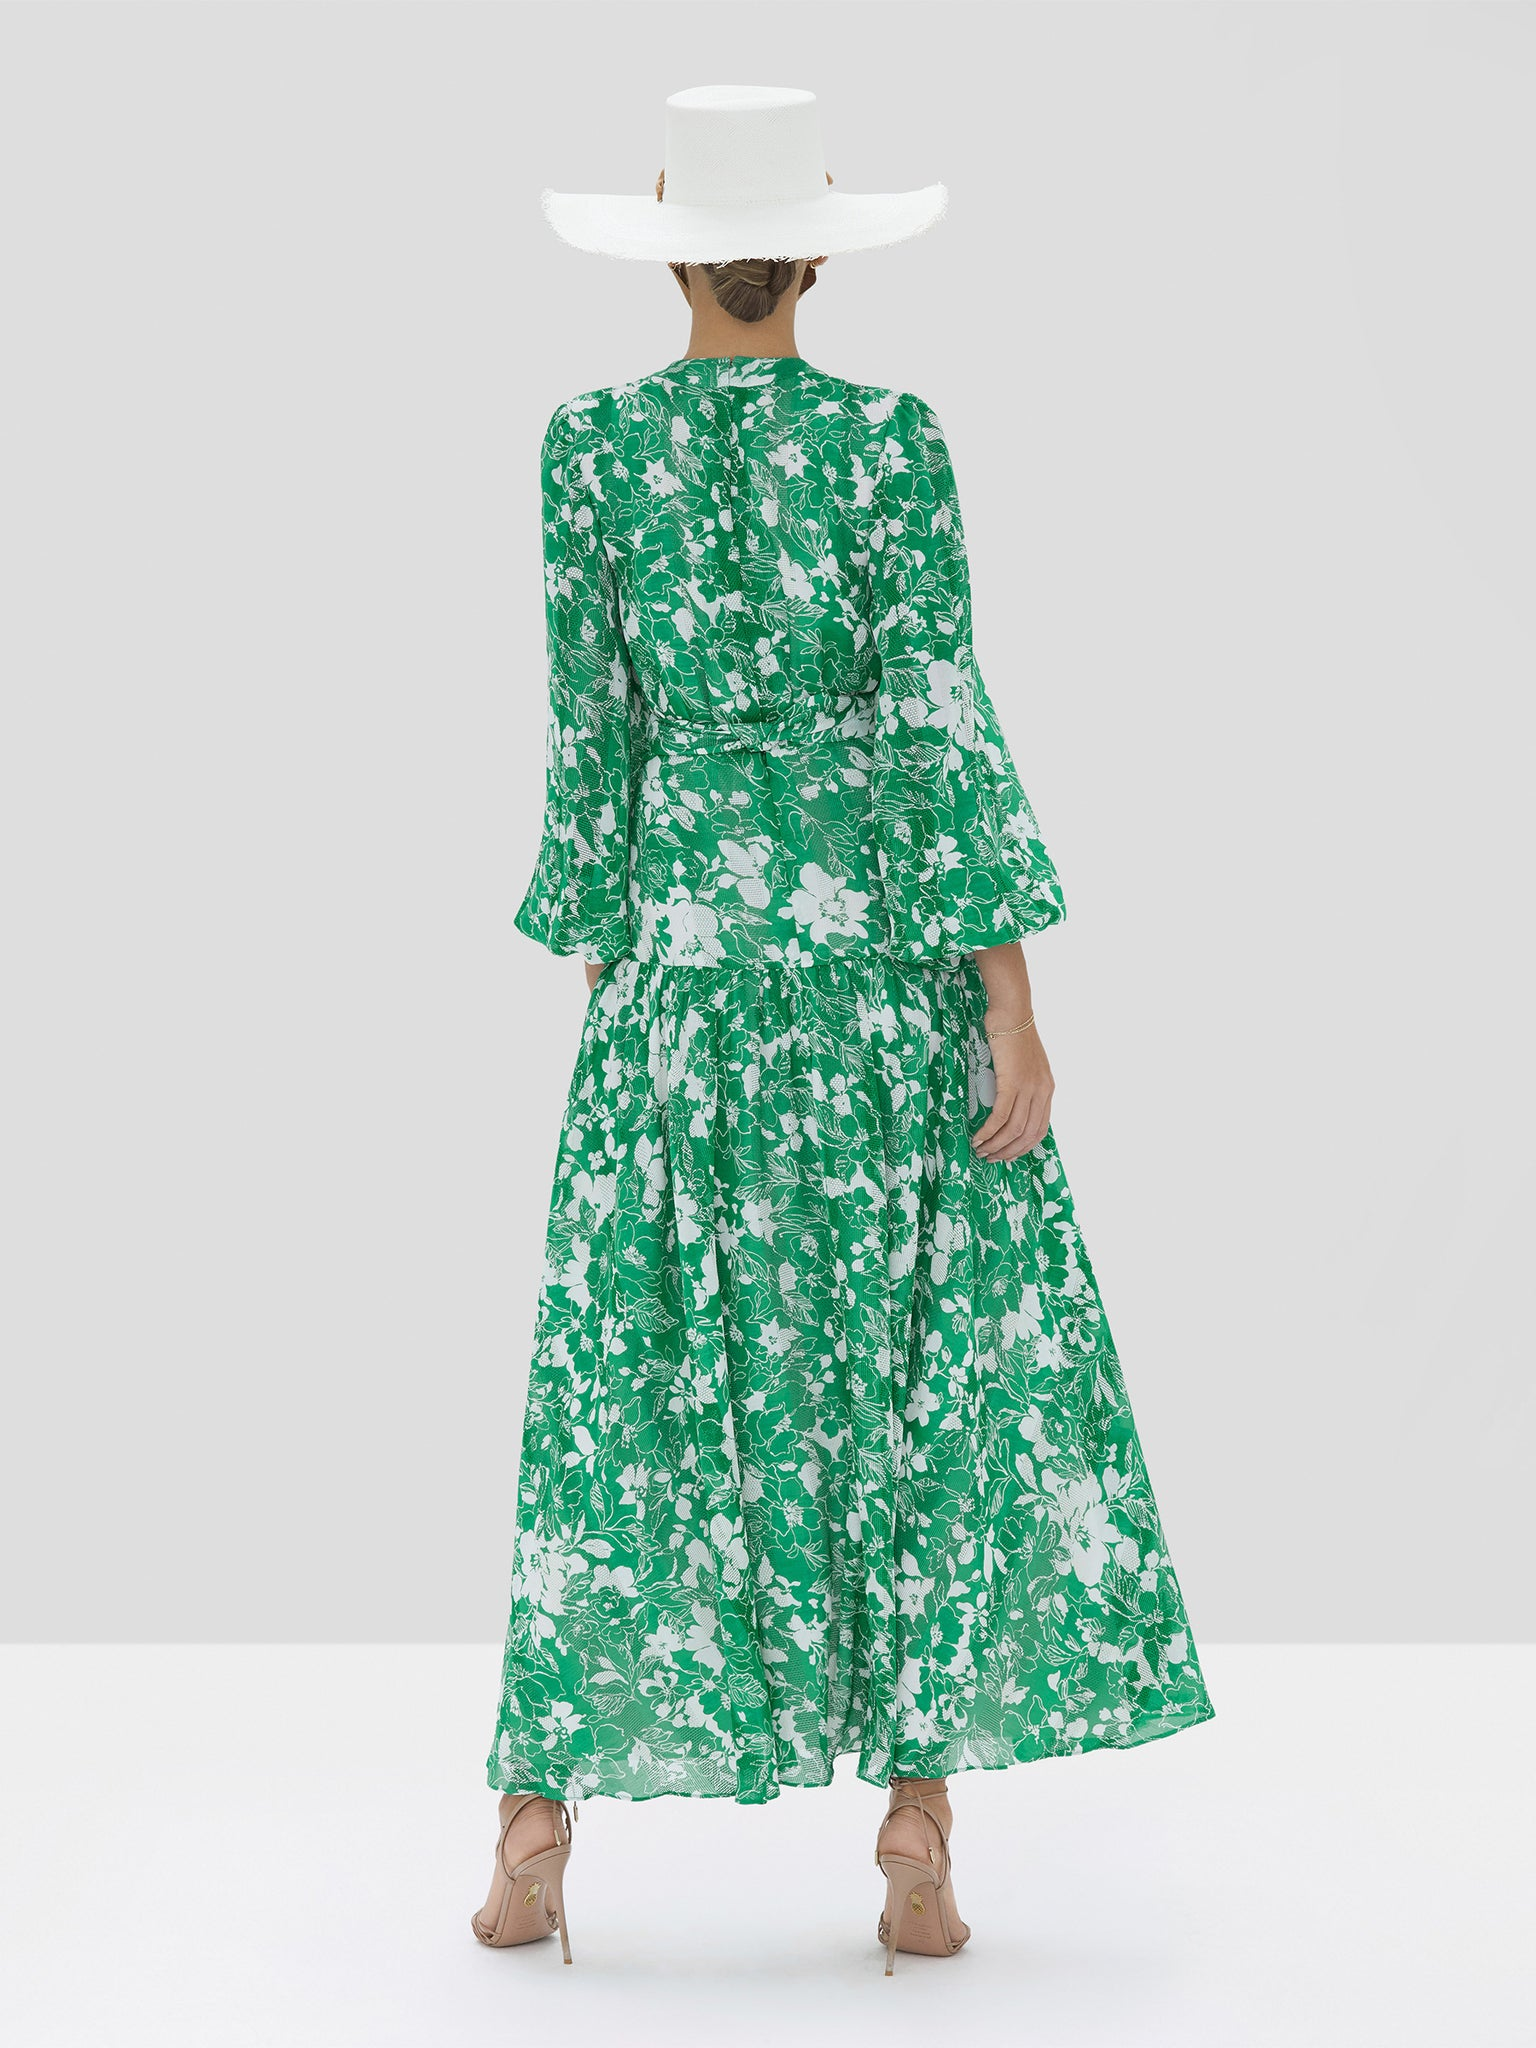 kazmera dress in emerald foral - Rear View